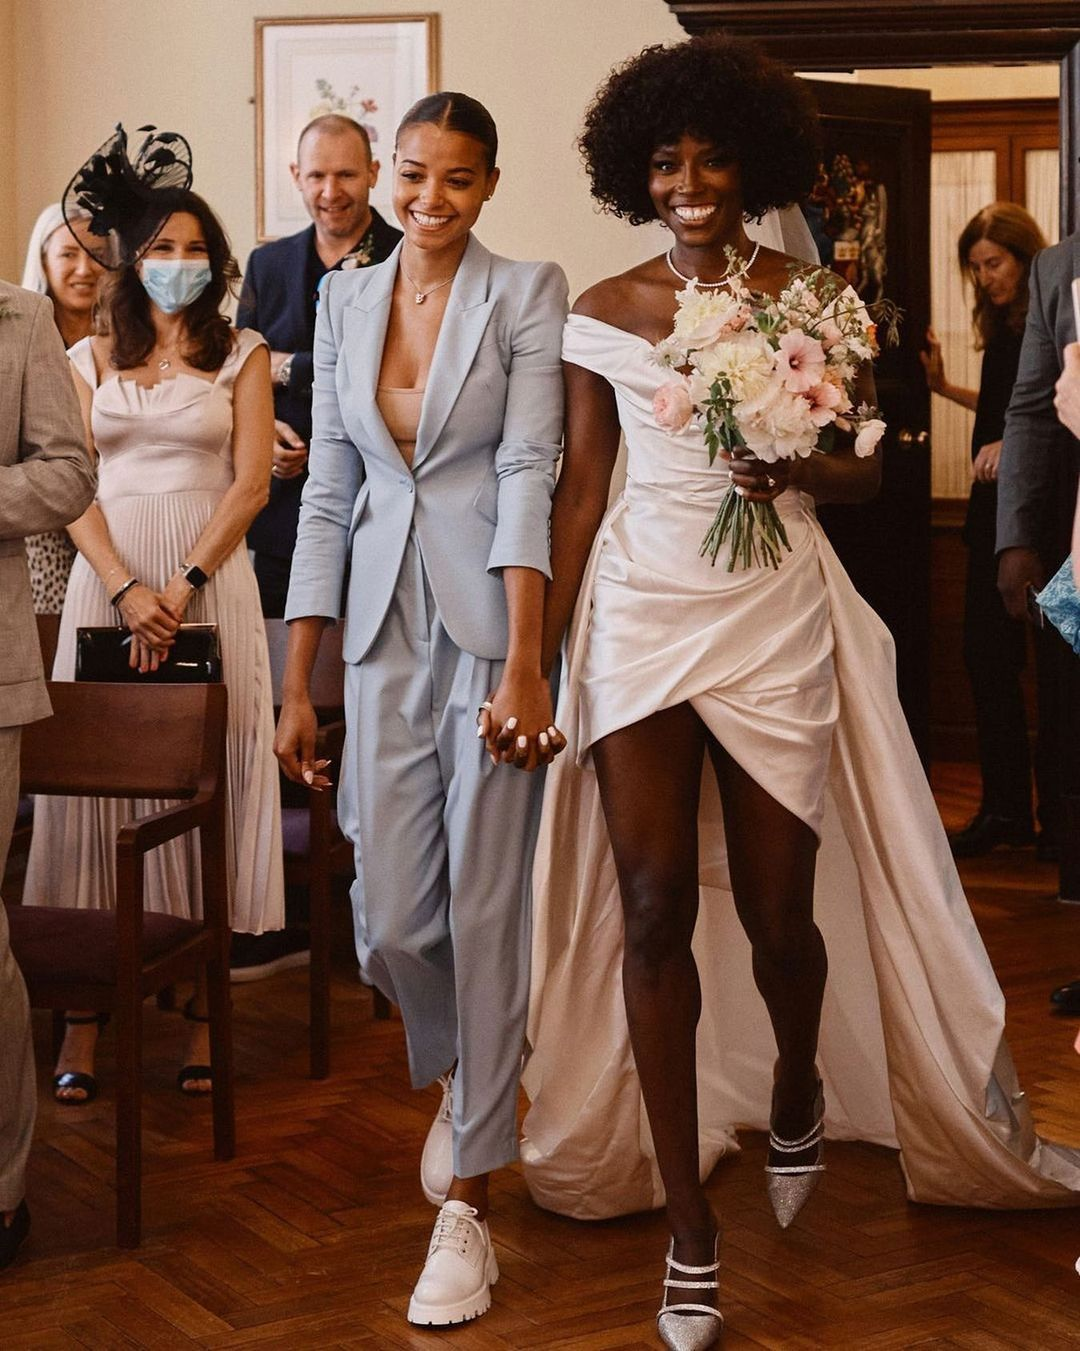 """All the Pretty Birds on Instagram: """"Summer weddings are always stunning💙👰🏾♀️ We are in love with the individual style of this mother-daughter duo😍 @lorrainepascale being…"""""""